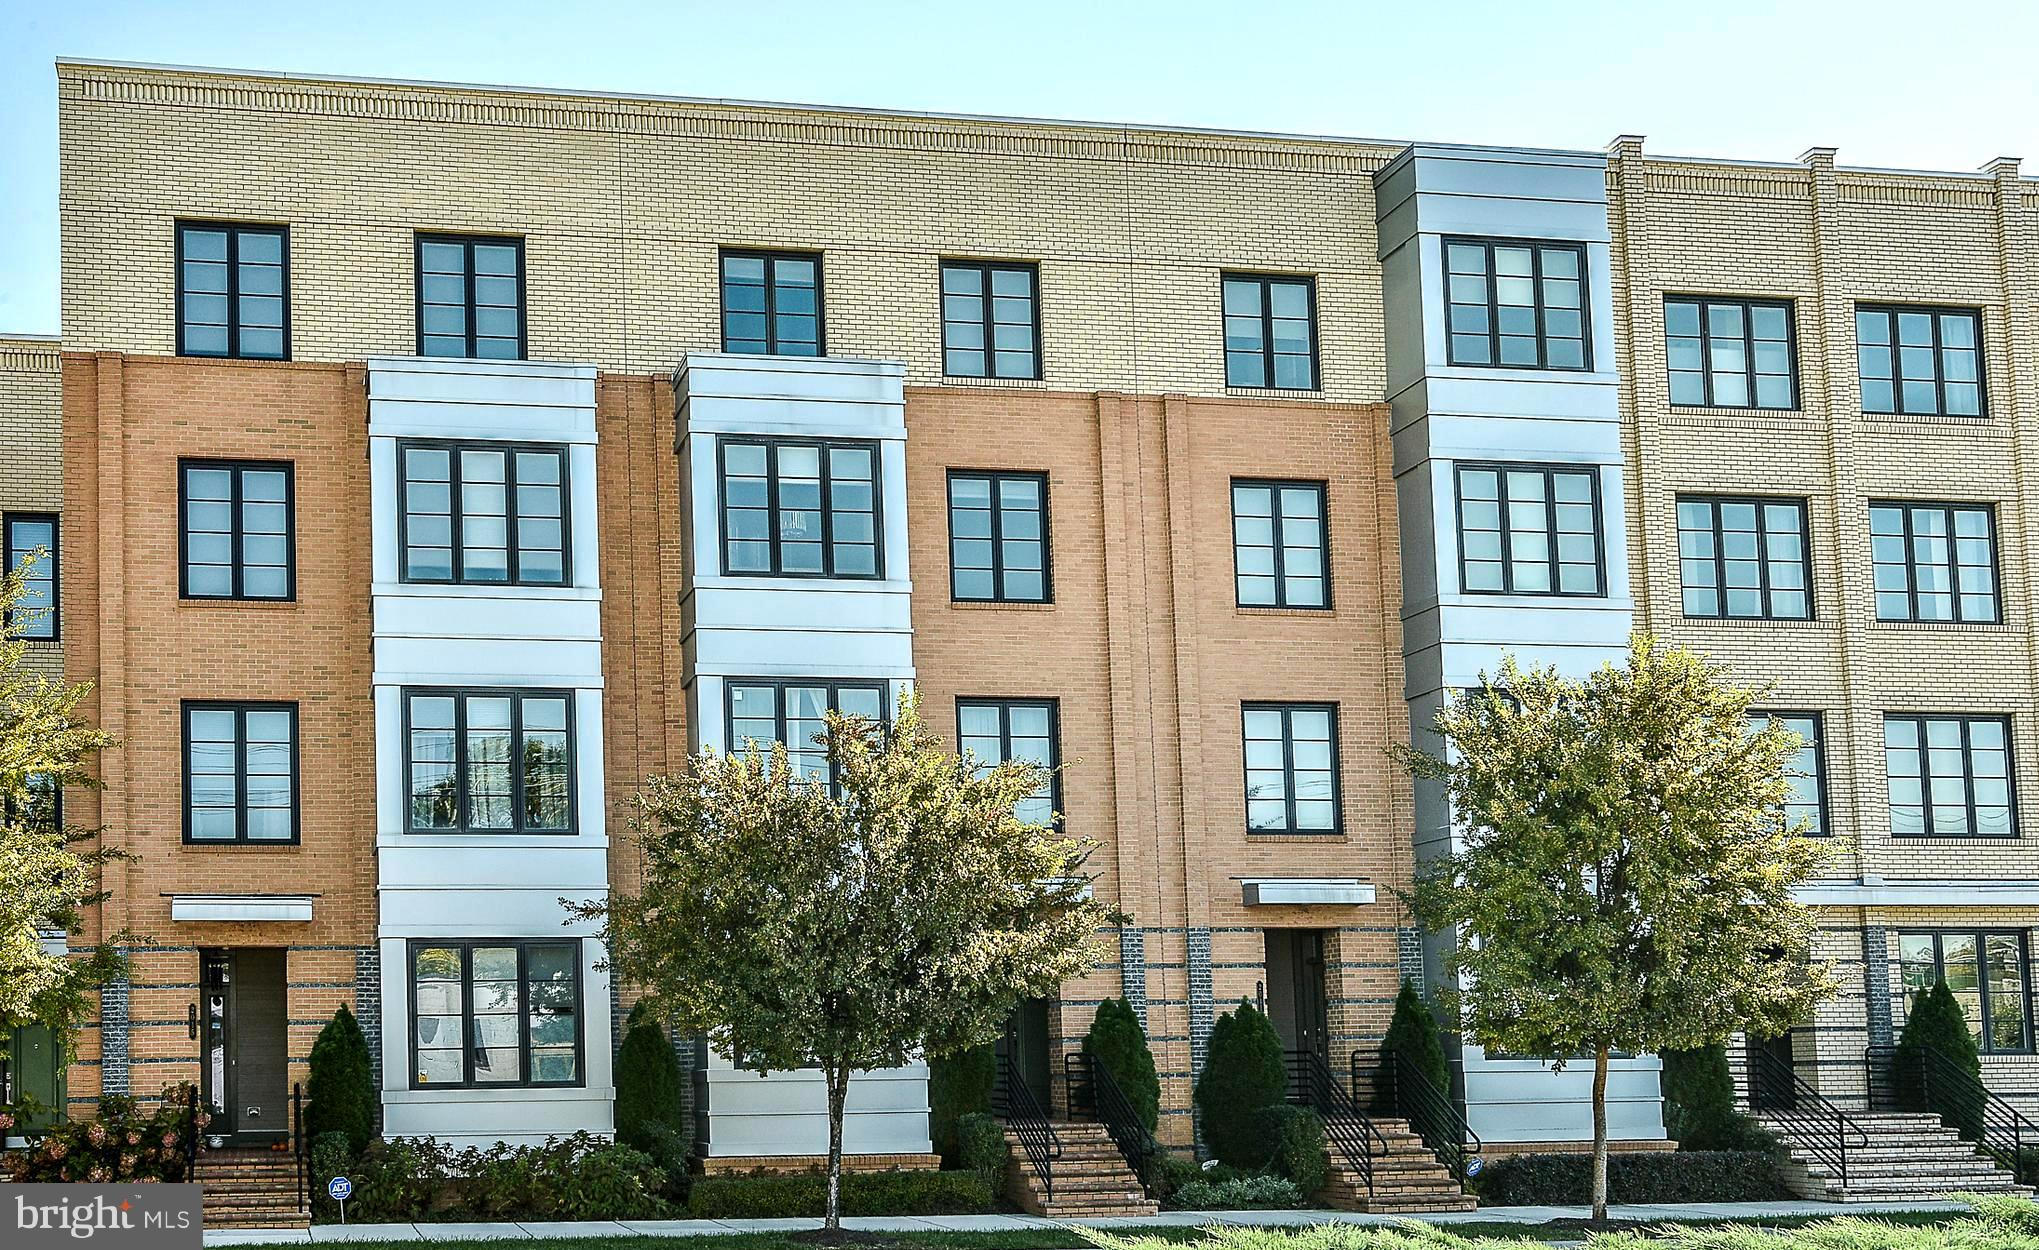 *Extraordinary Townhome w/ $100,000 in builder upgrades & another $60,000 in last 2 years*Largest model by Pulte-this is the one you have been waiting for!Dramatic stacked stone wall, Hand-scraped hdwd flrs on 2 lvls,Spa-bath w/ multi-head shower system,bedroom lvl laundry,freshly painted,Open concept Kitchen w/ Quartz countertops,recessed panel cabs & SS Appls flows into Fam Rm w/ gas FP & more!